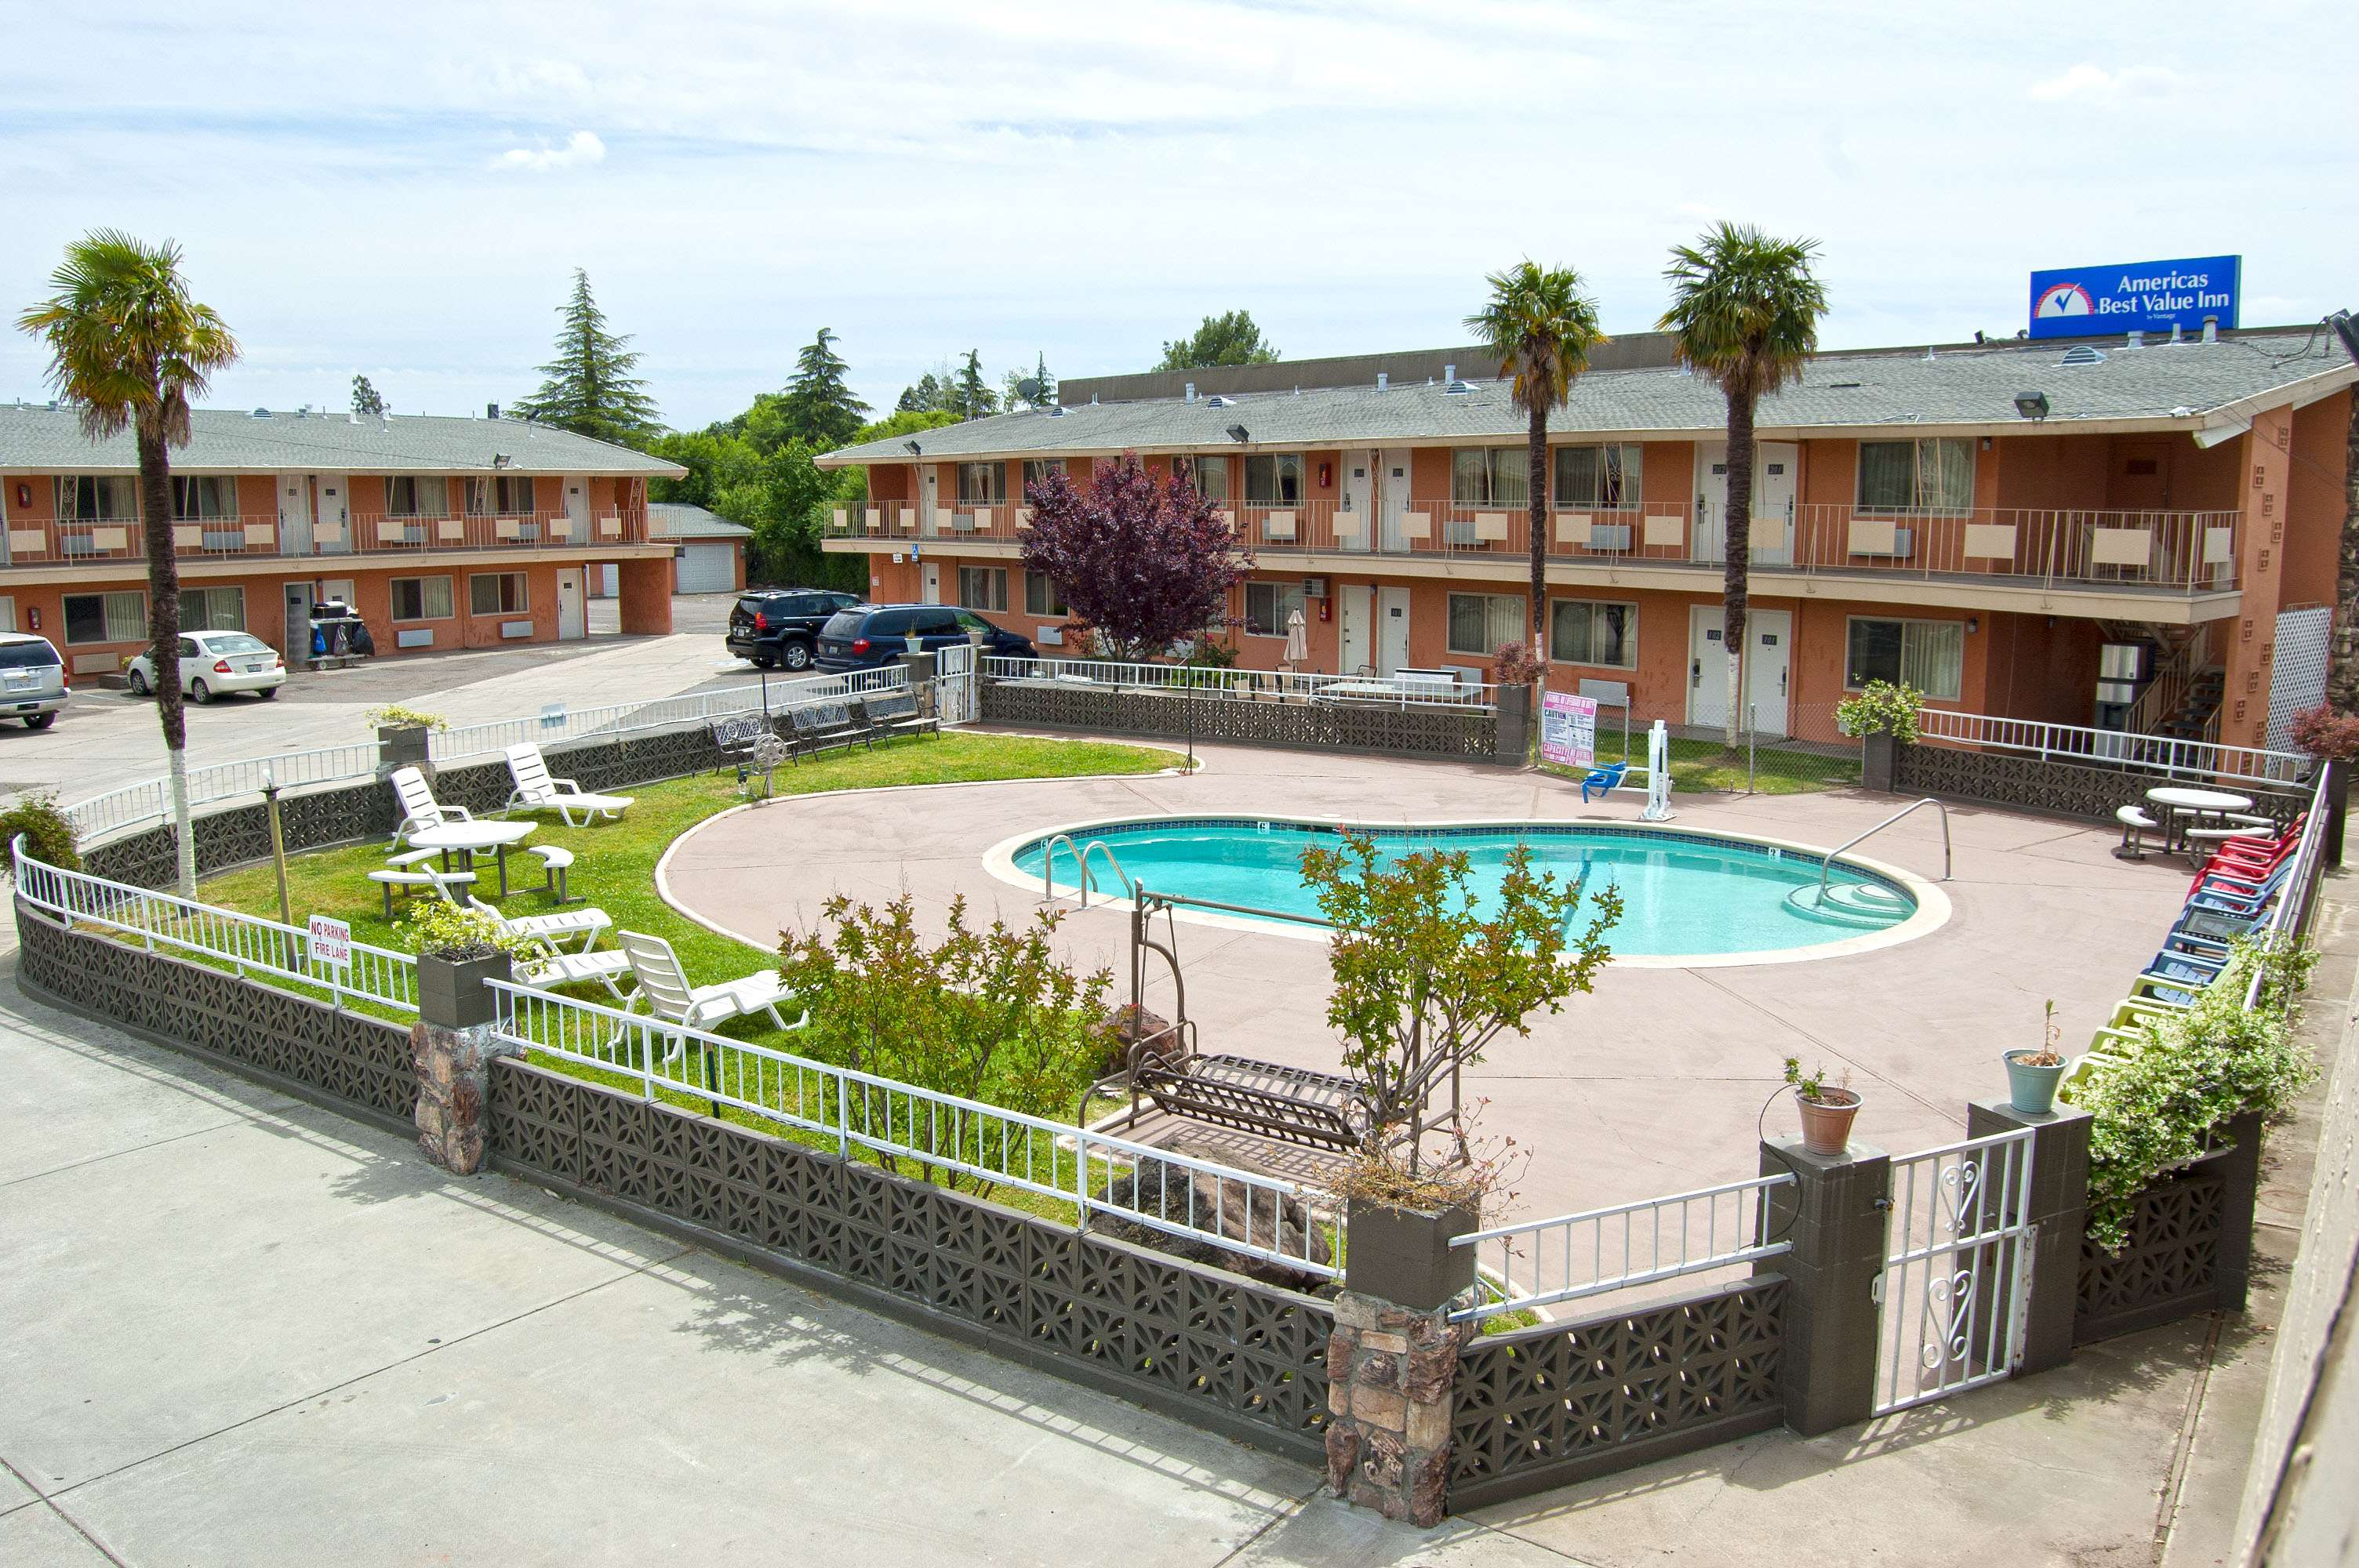 Americas best value inn red bluff coupons red bluff ca for Americas best coupon code